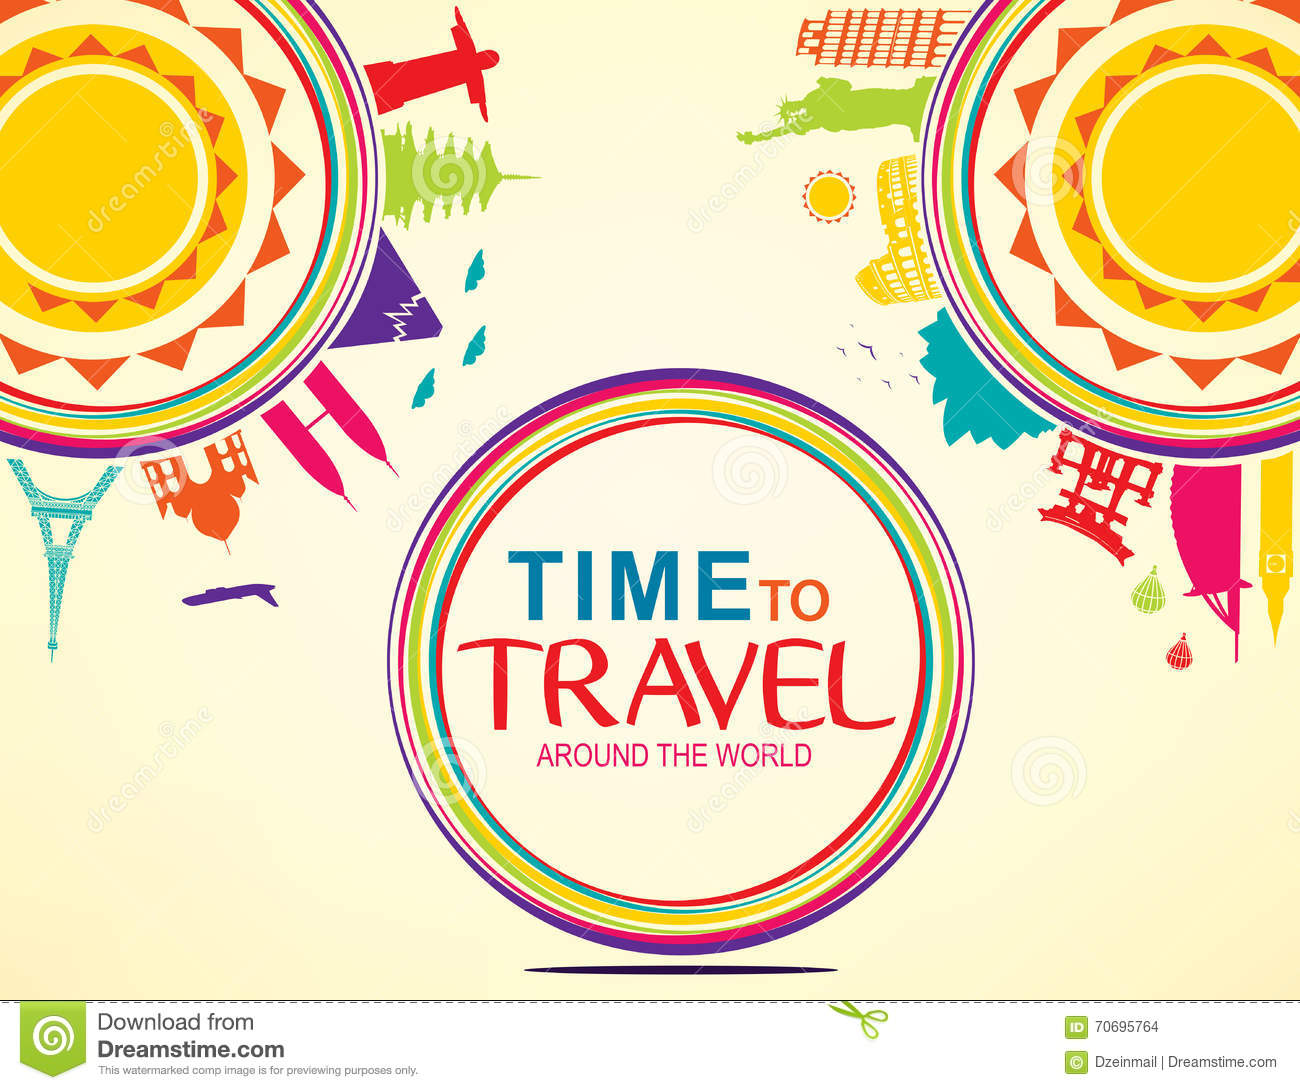 Time To Travel Around The World Colorful Vector Pop Art